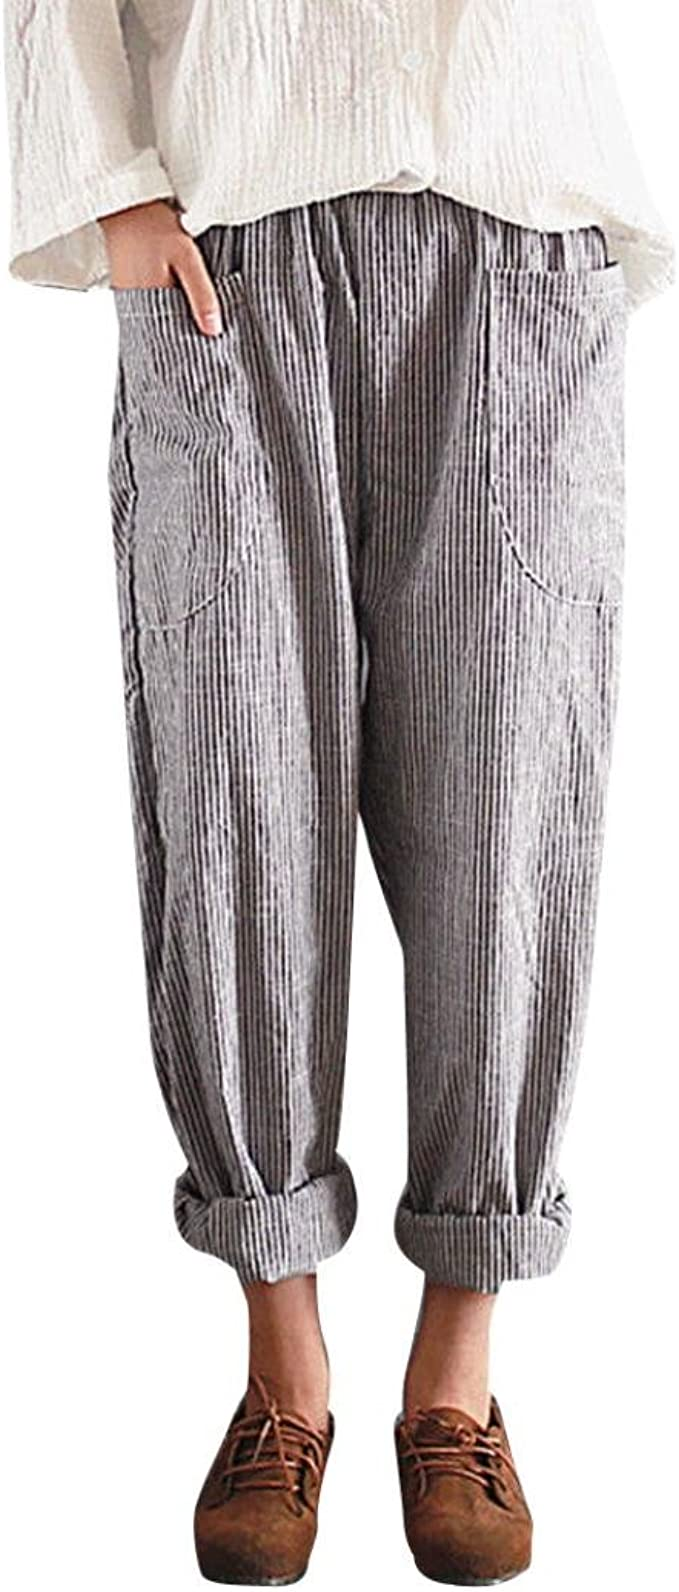 Mallimoda Womens Vintage Checked Elastic Waist Plus Size Harem Pants Trousers